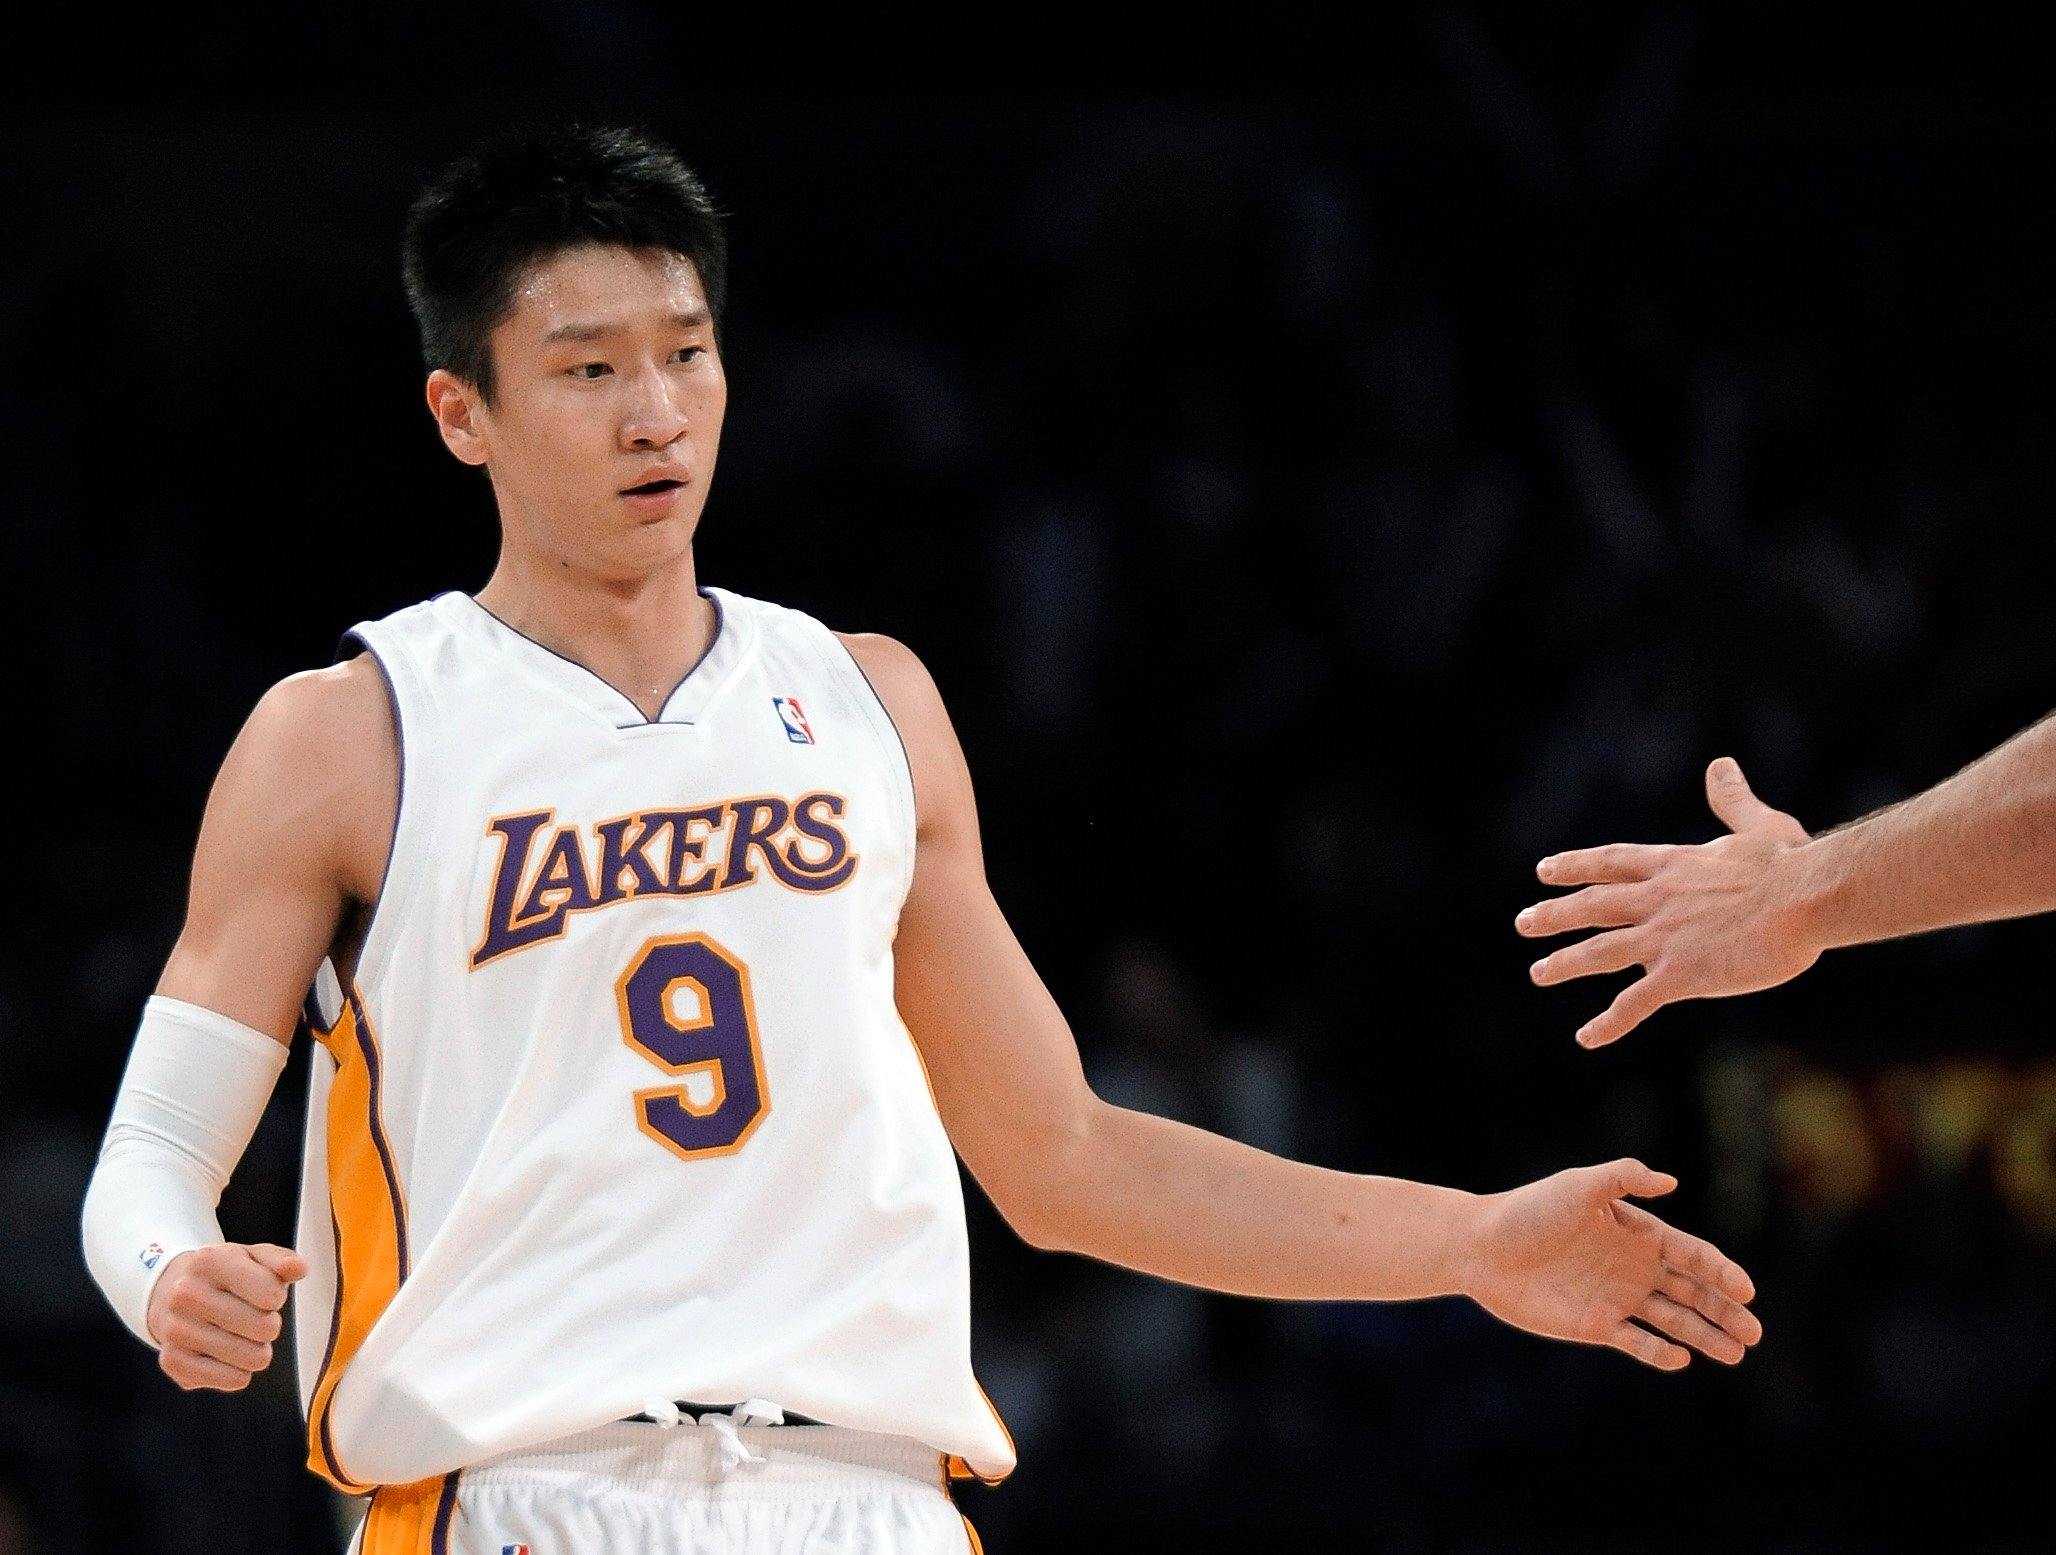 748b37b3e5a Jeremy Lin not the first Asian player to win the NBA – inside the bizarre  tale of Sun Yue's 2009 championship with Kobe Bryant's LA Lakers